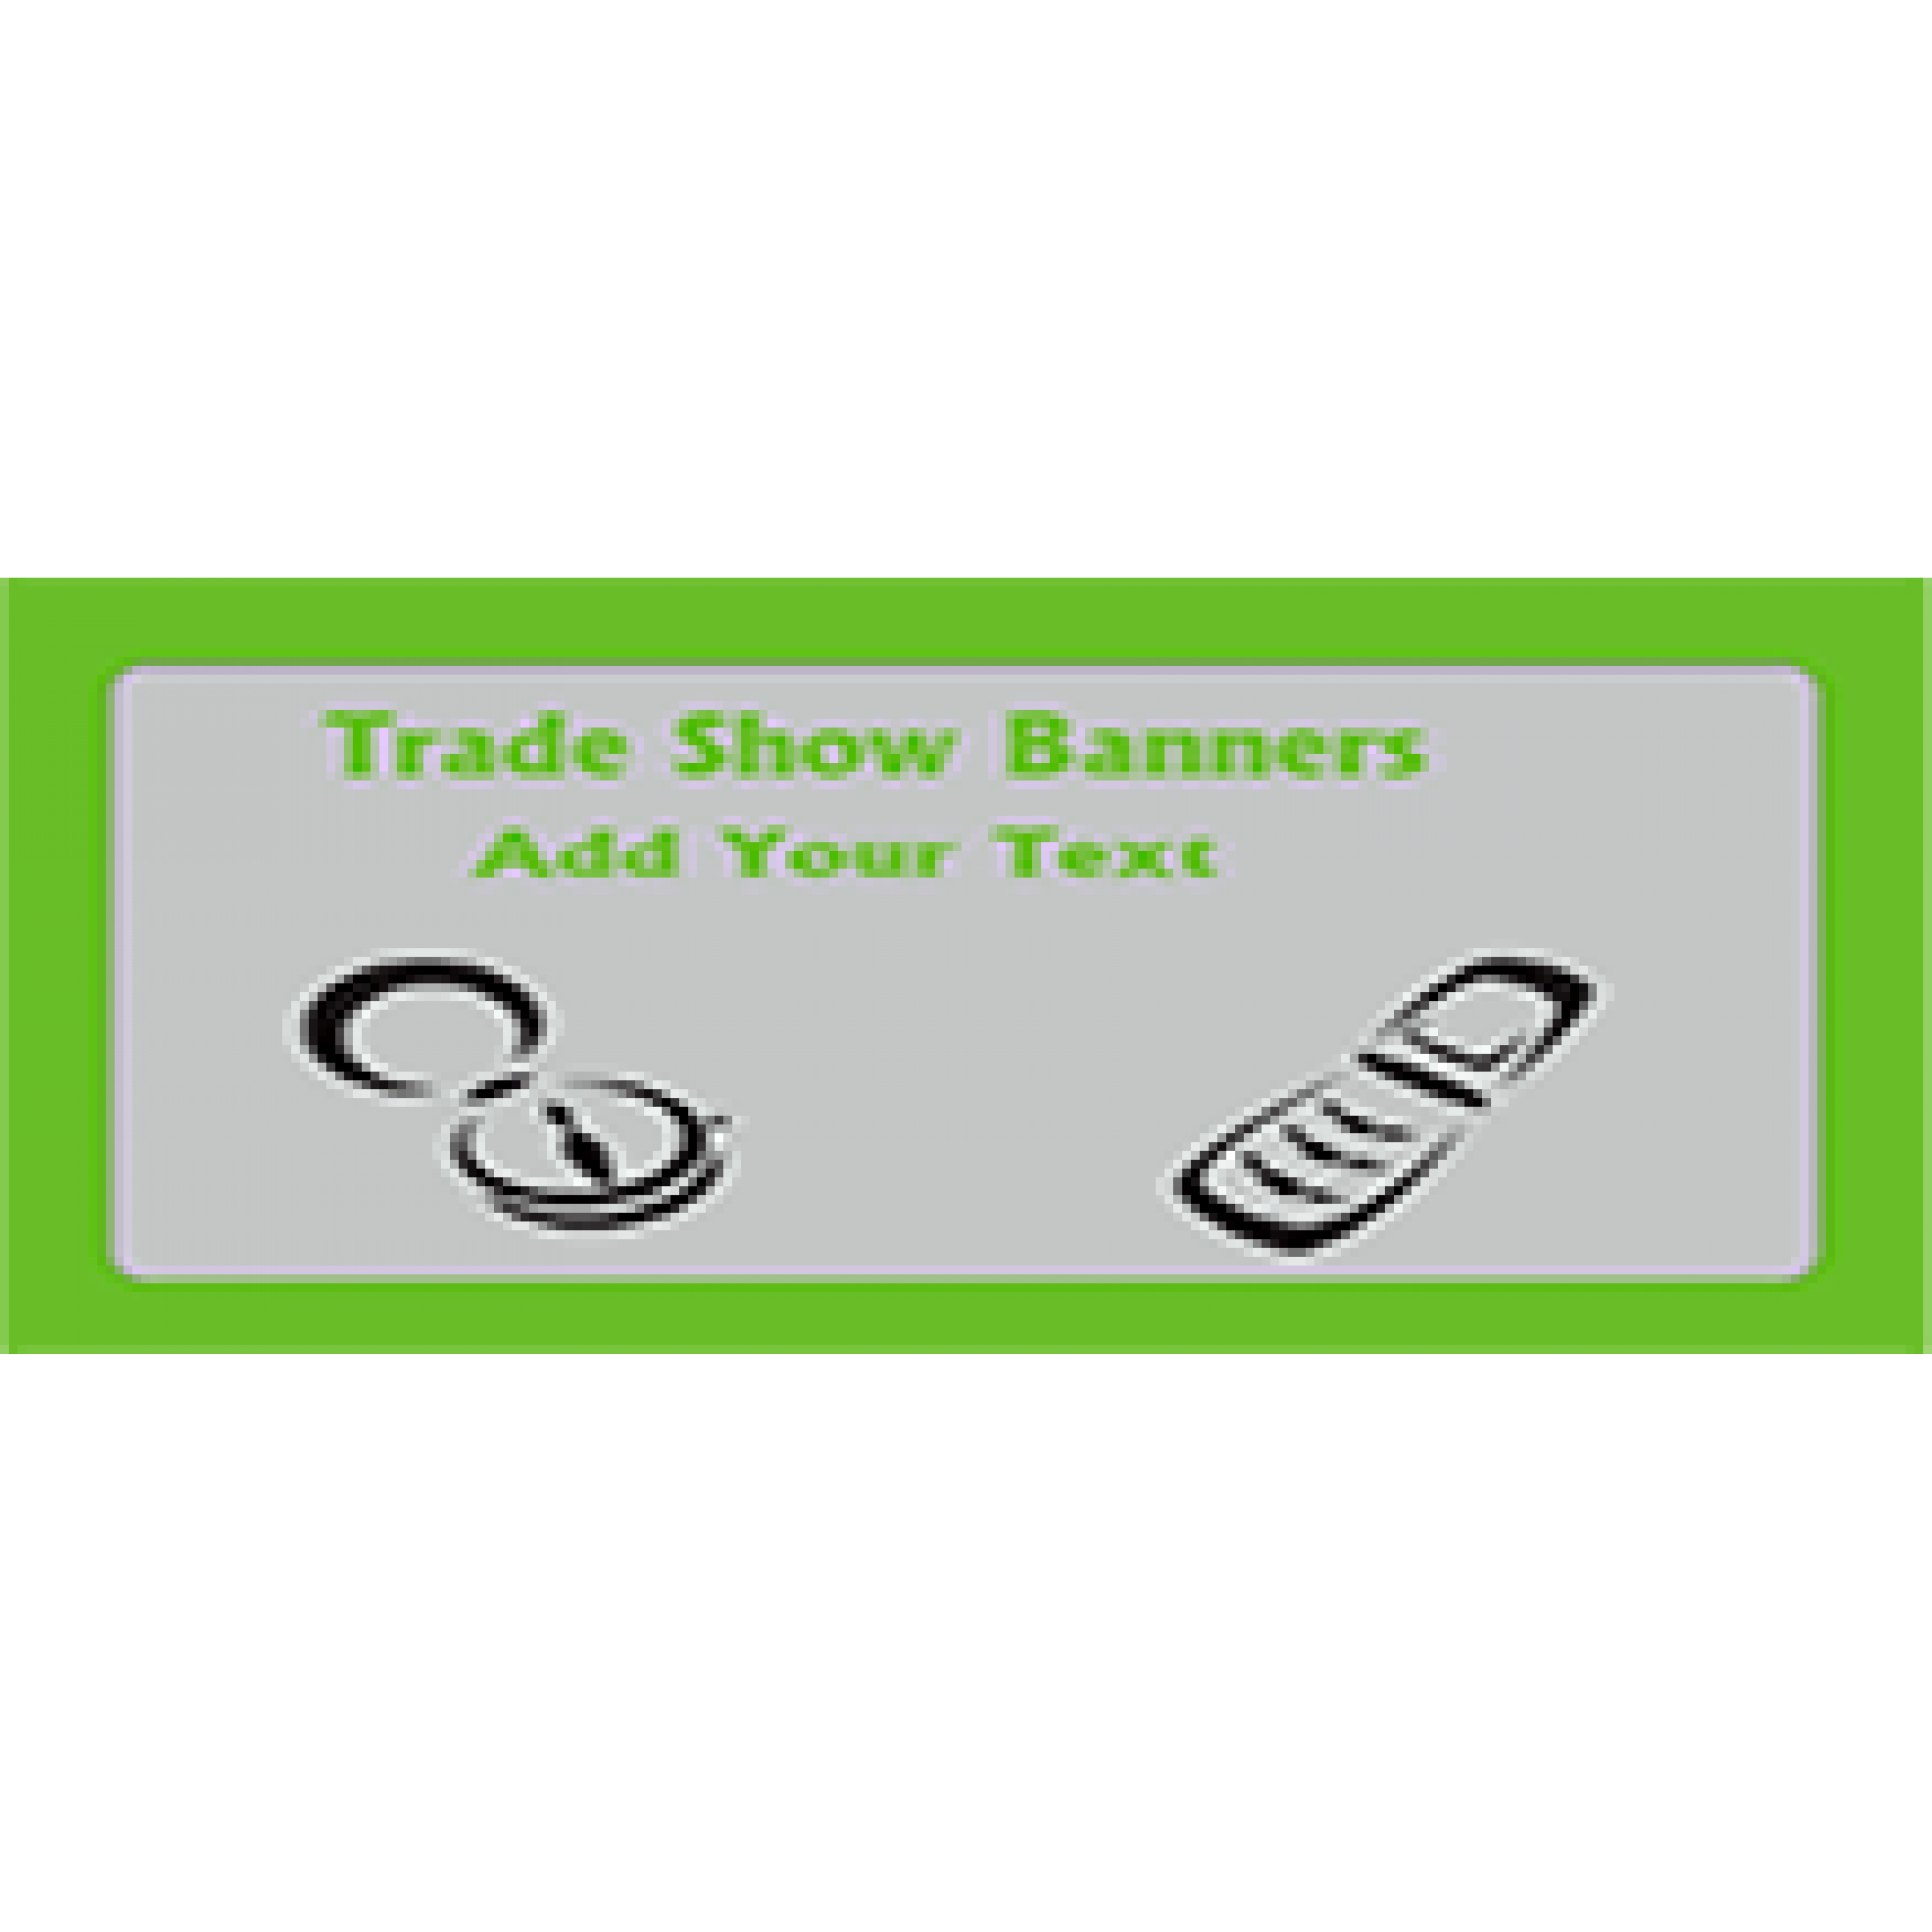 Trade Show Banner 48x72 inches